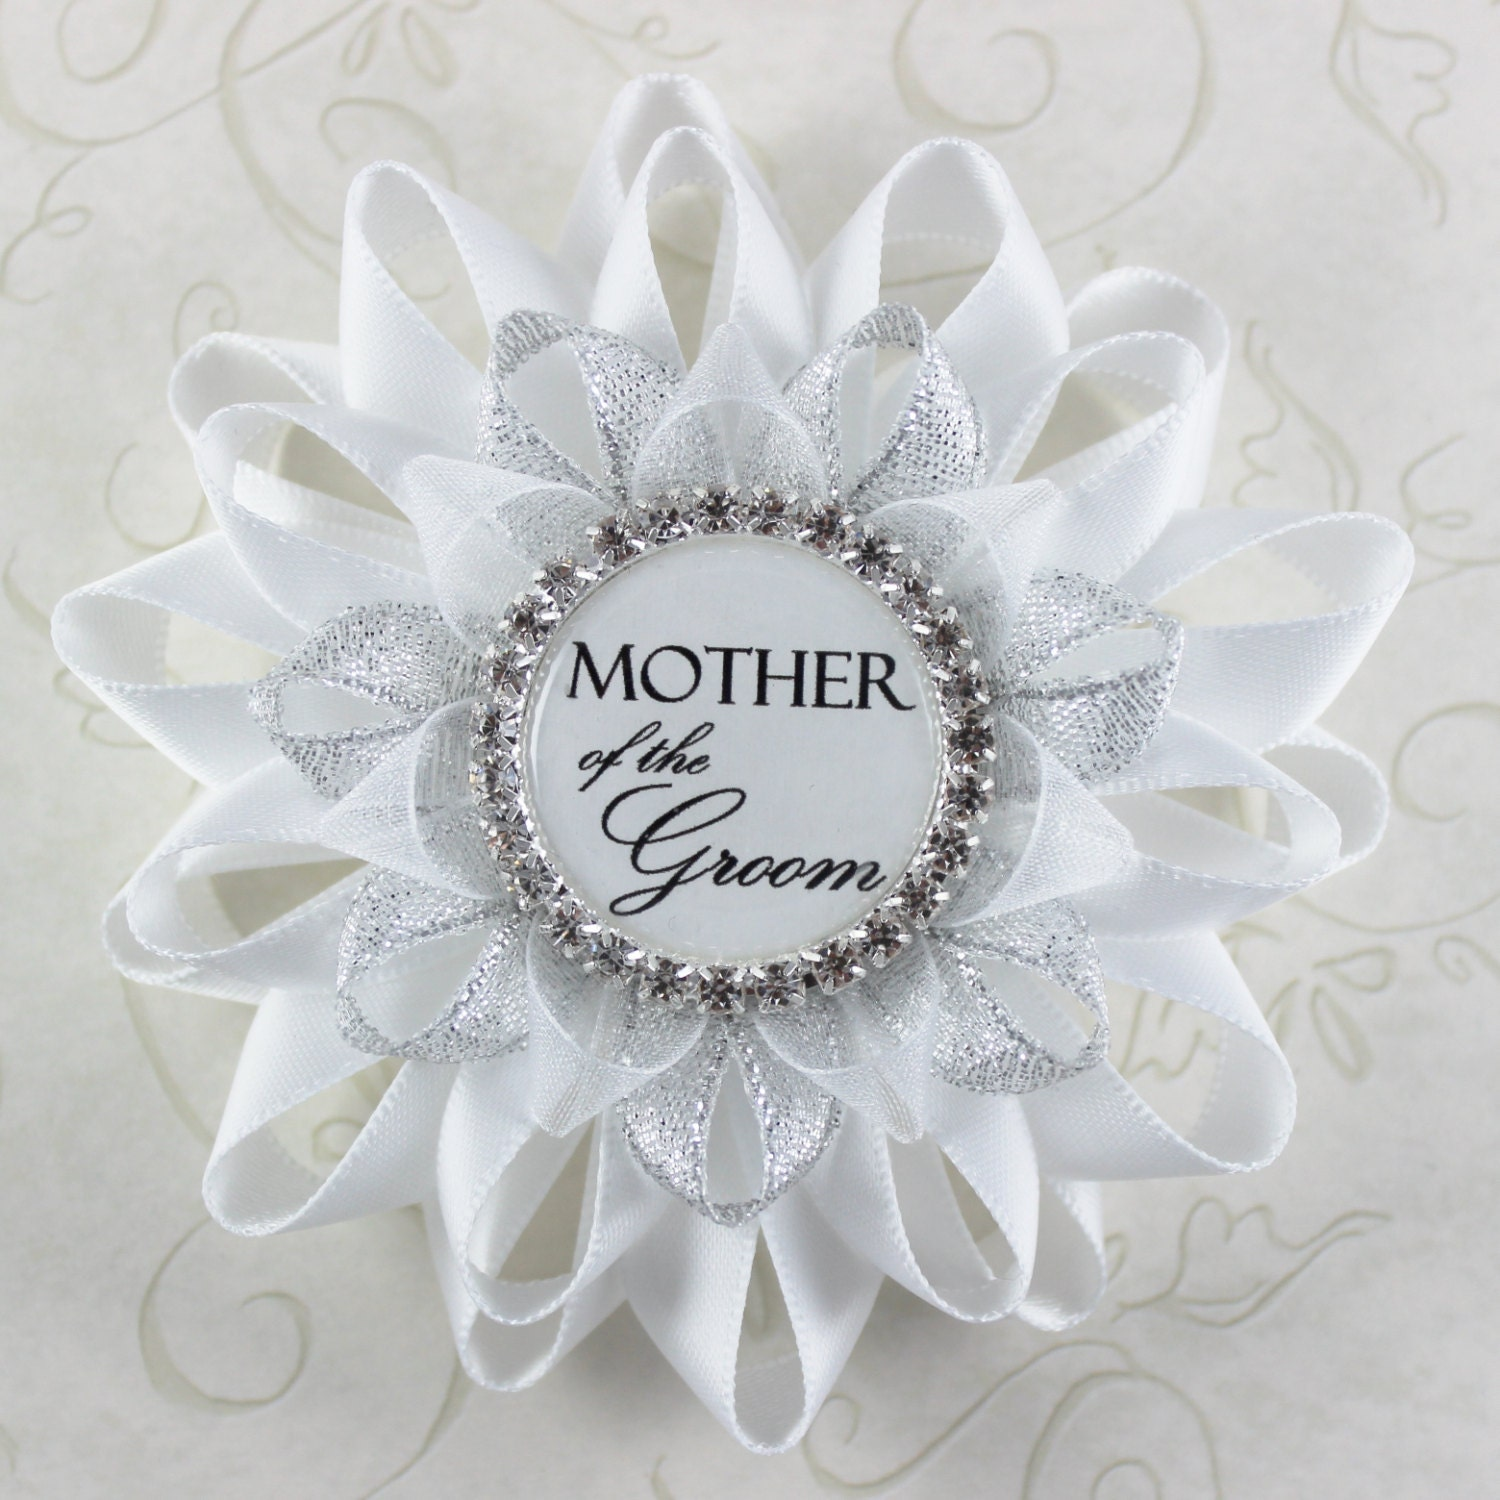 Wedding Gift For Bride From Mother: Mother Of The Groom Gift, Bridal Shower Pins, Bridal